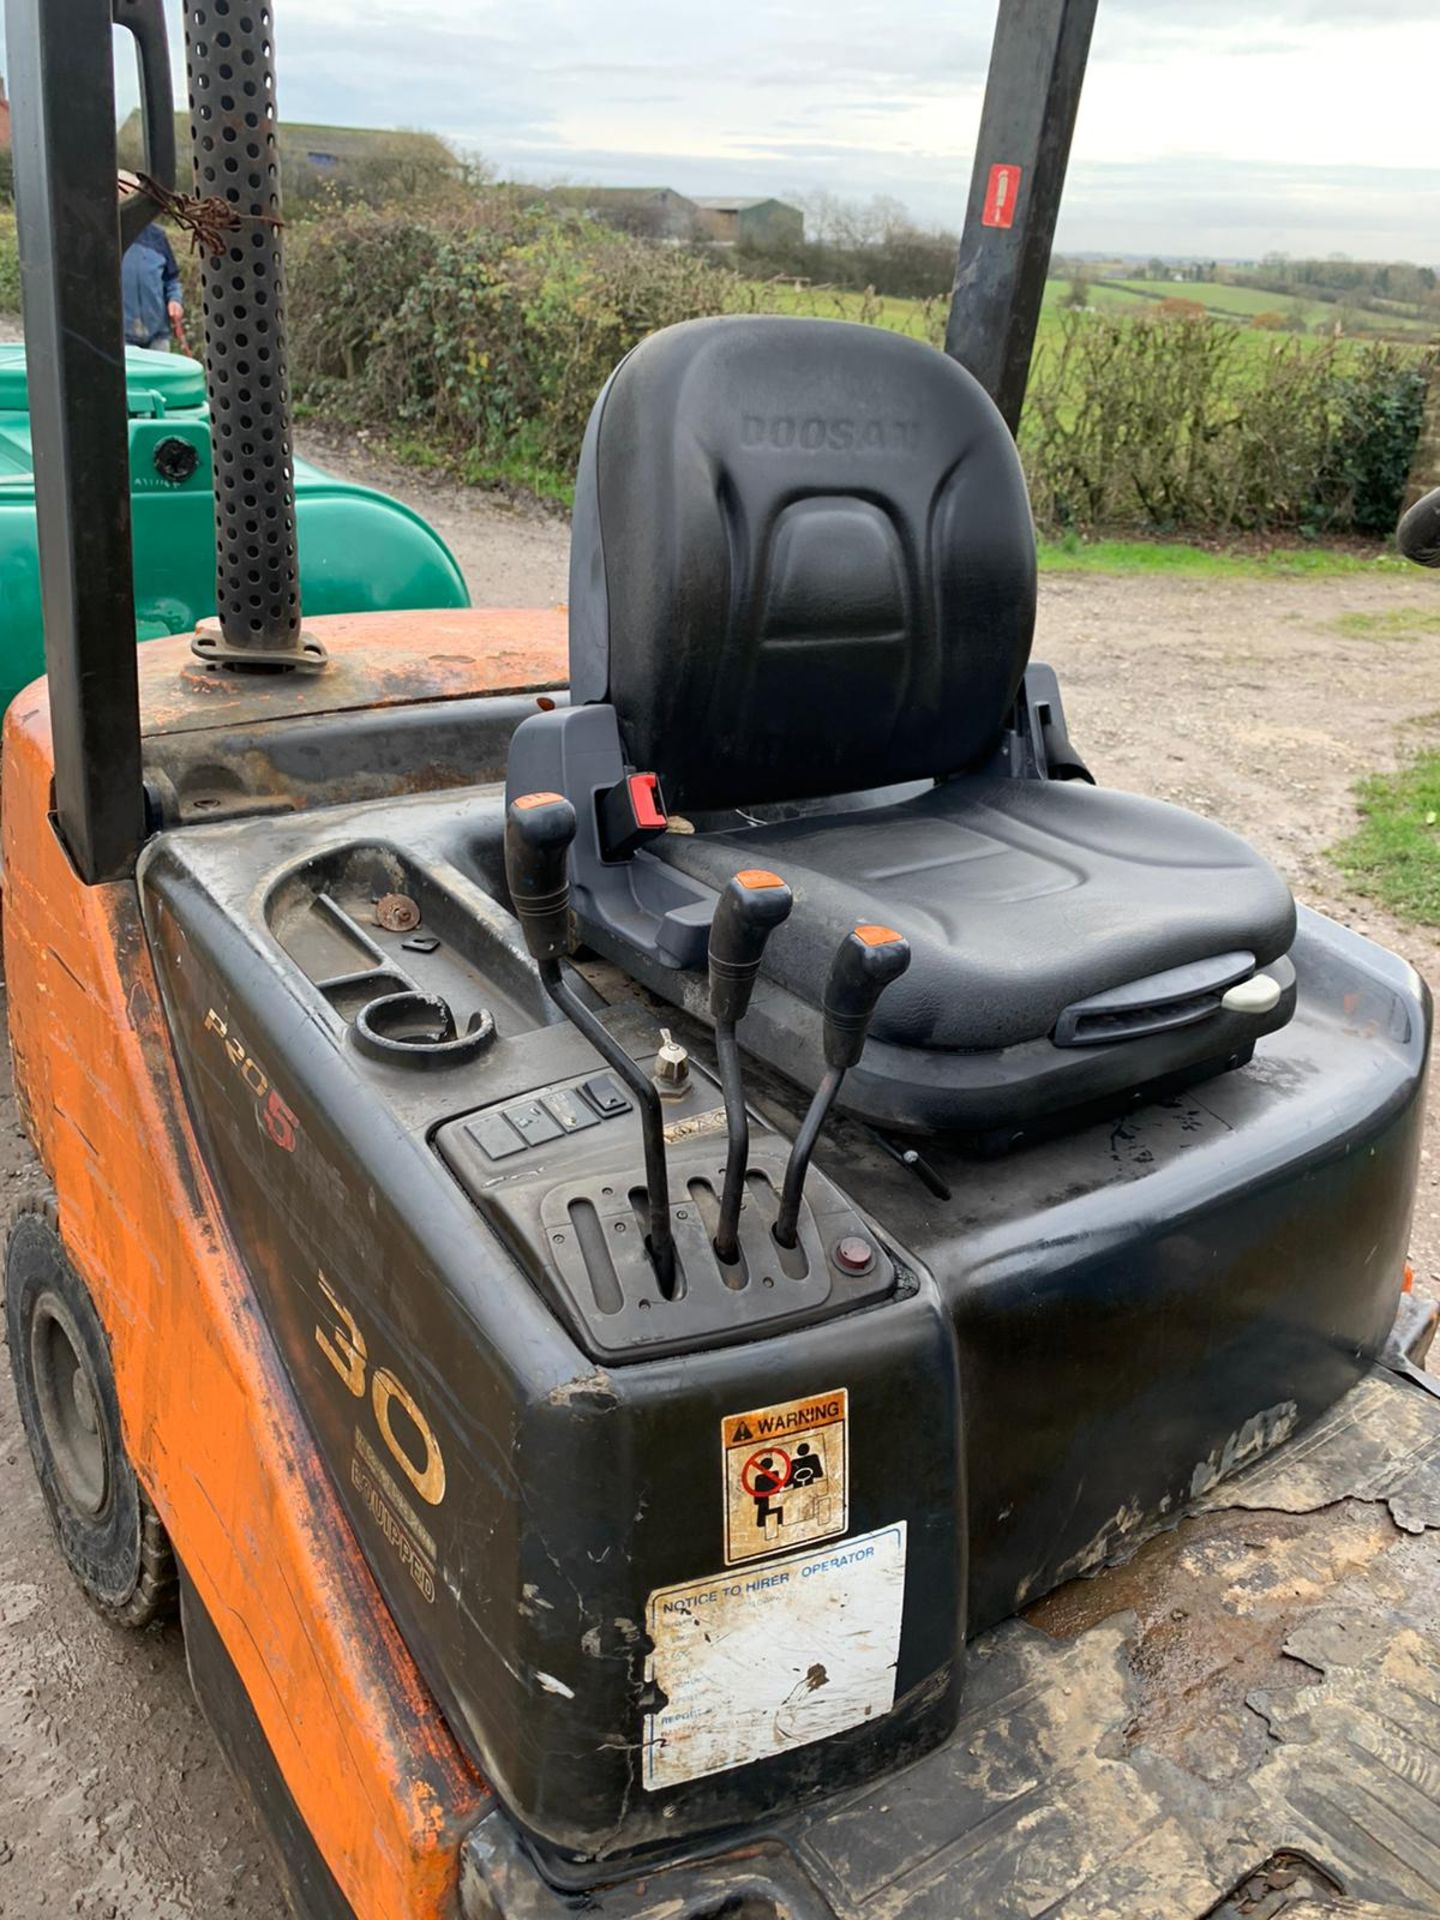 DOOSAN D30S-5 FORKLIFT, RUNS, DRIVES AND LIFTS, HYDRAULIC FORK POSITIONING, TRAILER NOT INCLUDED - Image 6 of 6